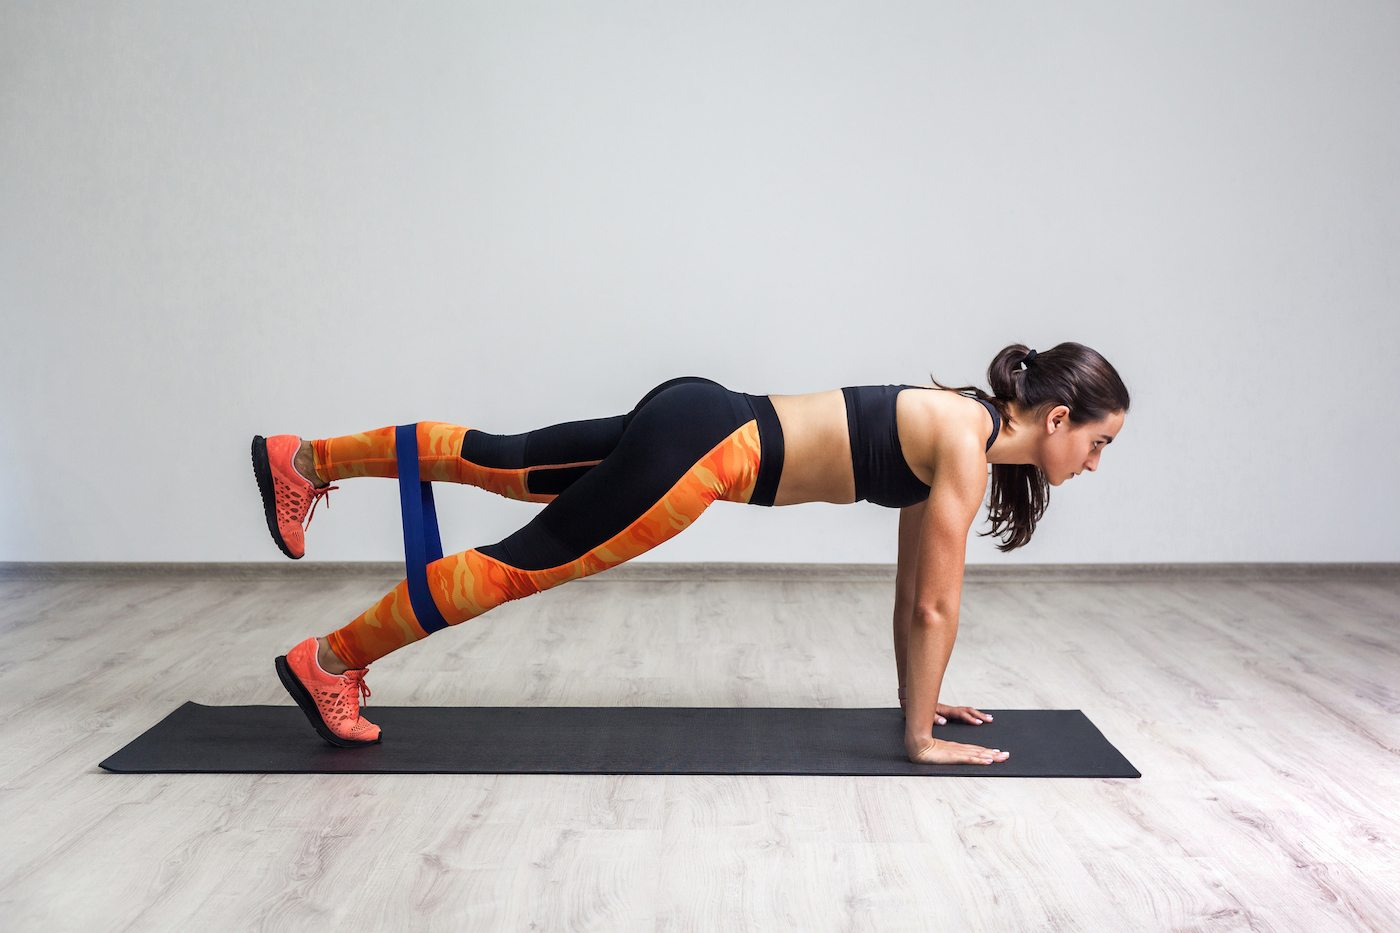 5 exercises that'll fix a glute imbalance and nix that lower back pain